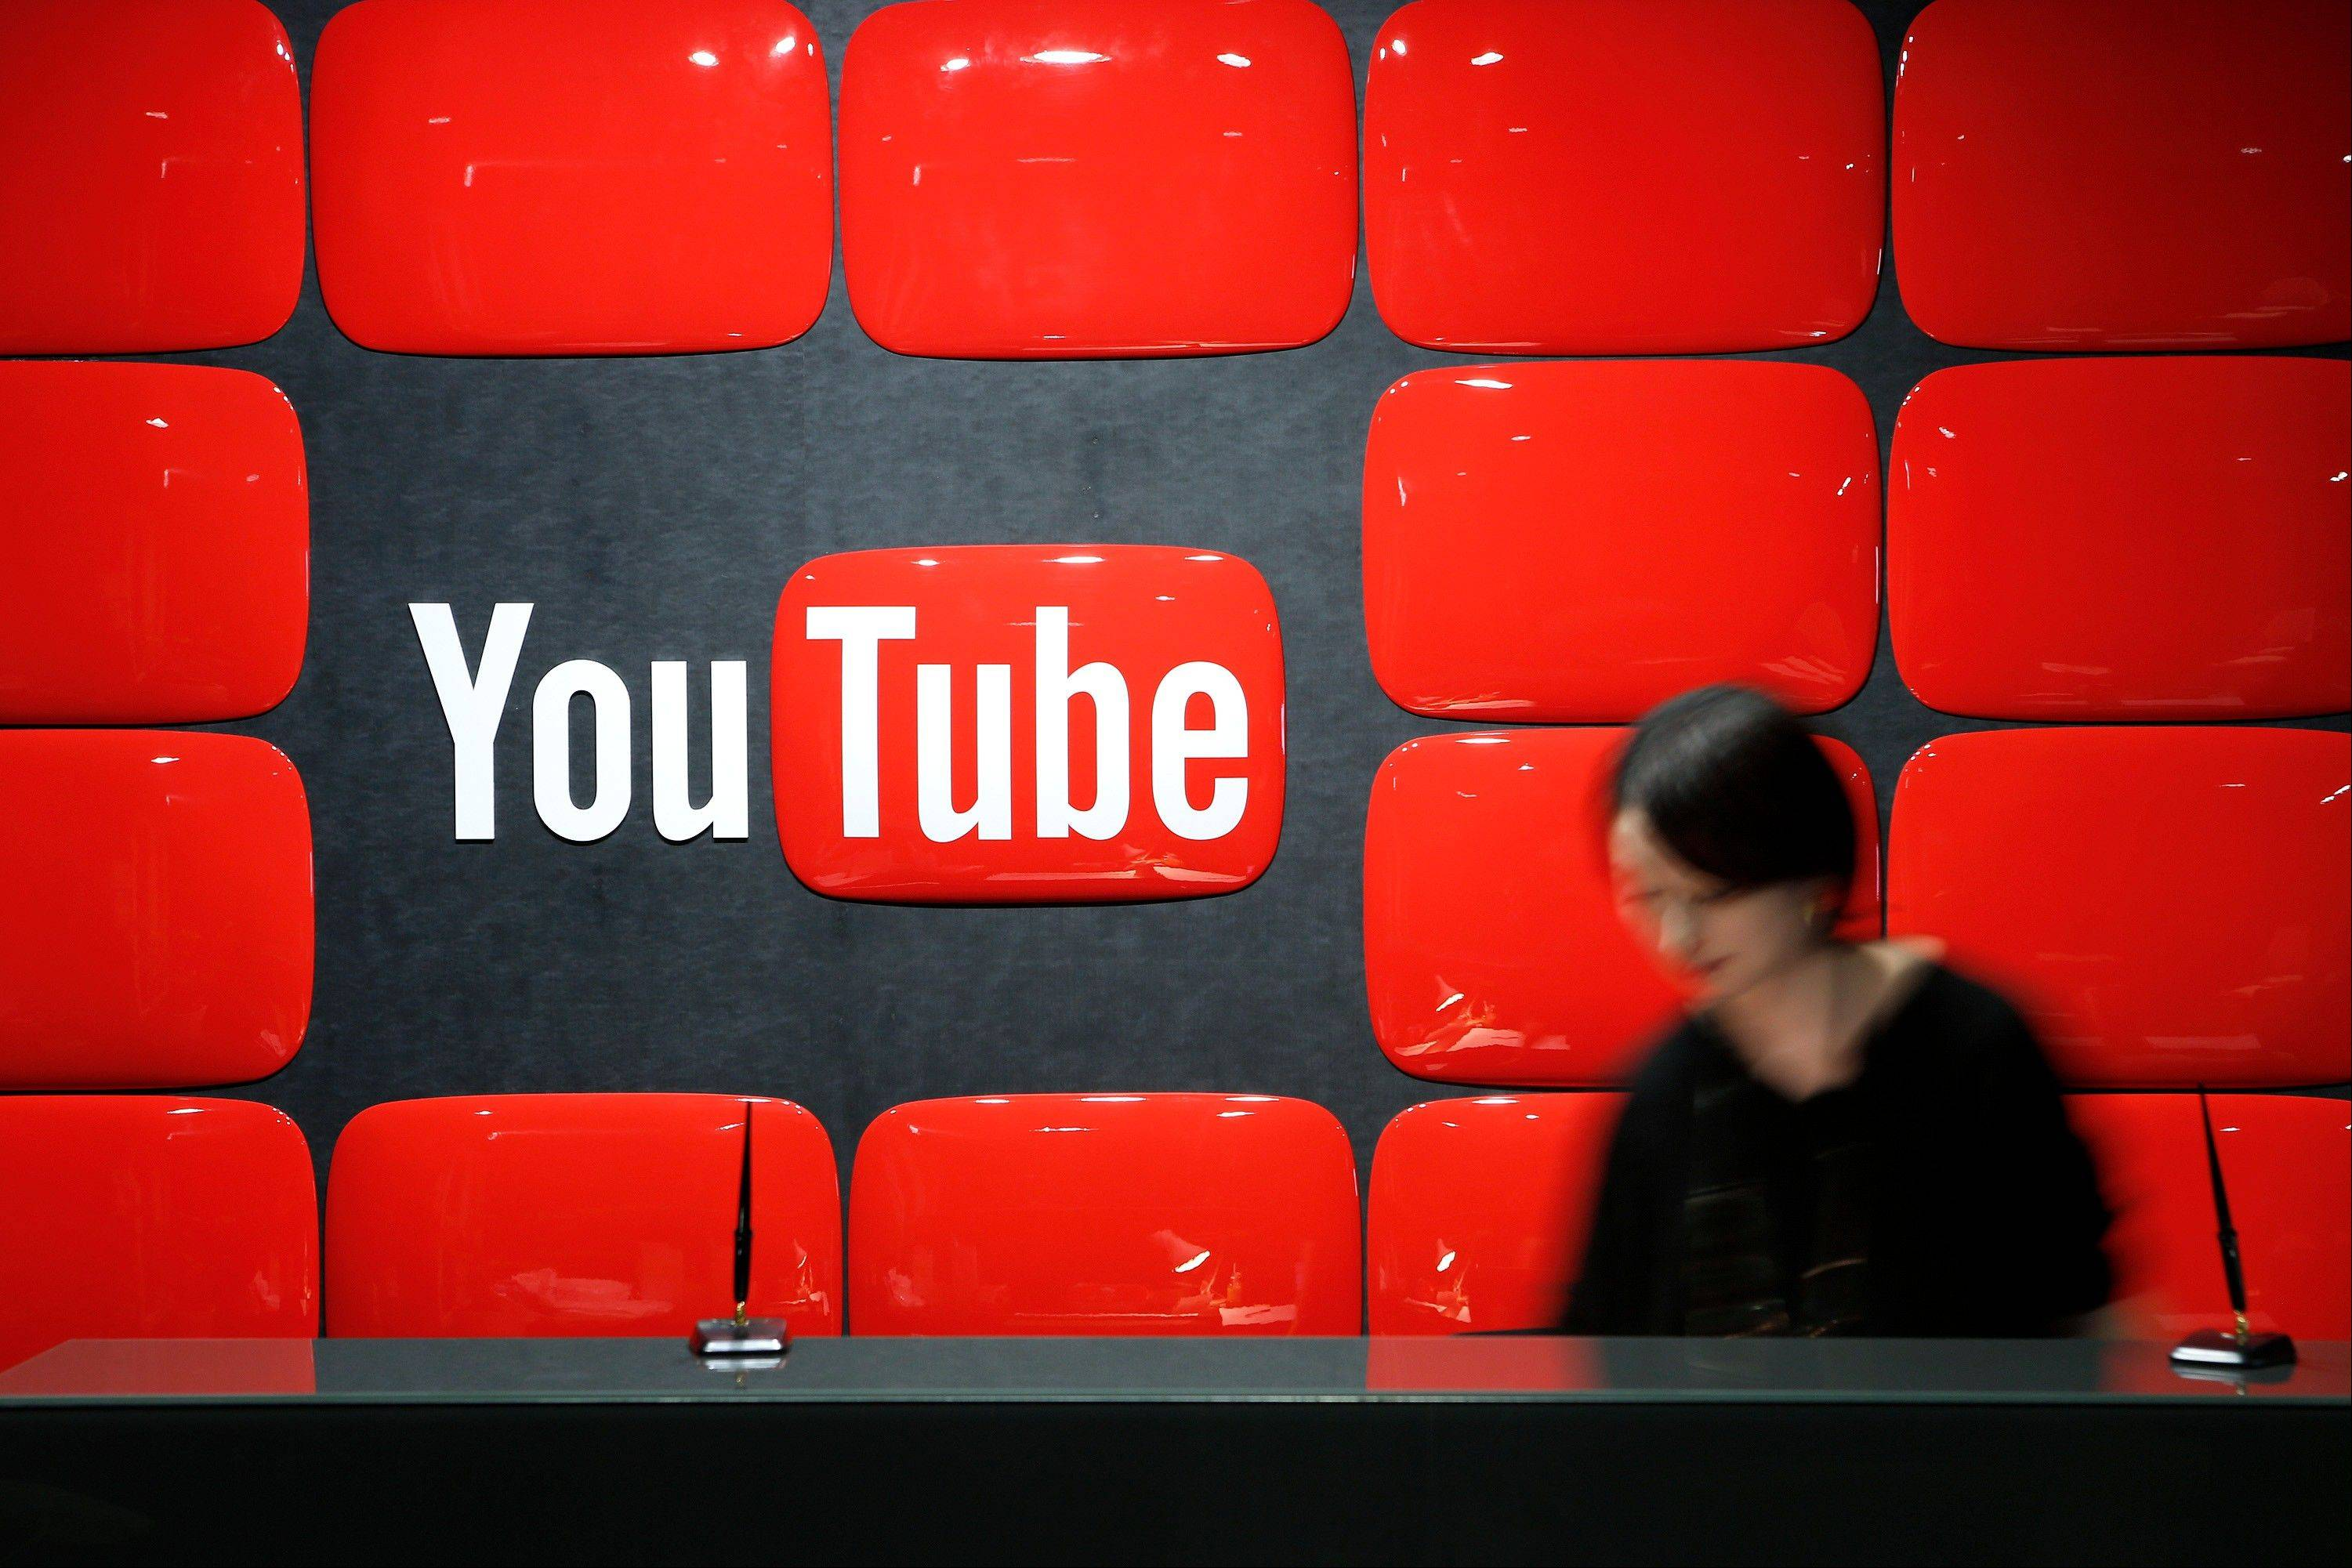 Google Inc.�s YouTube logo is displayed behind the reception desk at the company�s YouTube Space studio in Tokyo, Japan, on Saturday, March 30, 2013. In Japan, YouTube�s biggest regional success story in Asia, the company is recruiting online stars to bolster its local-language channels with more-targeted original programming and higher production values.